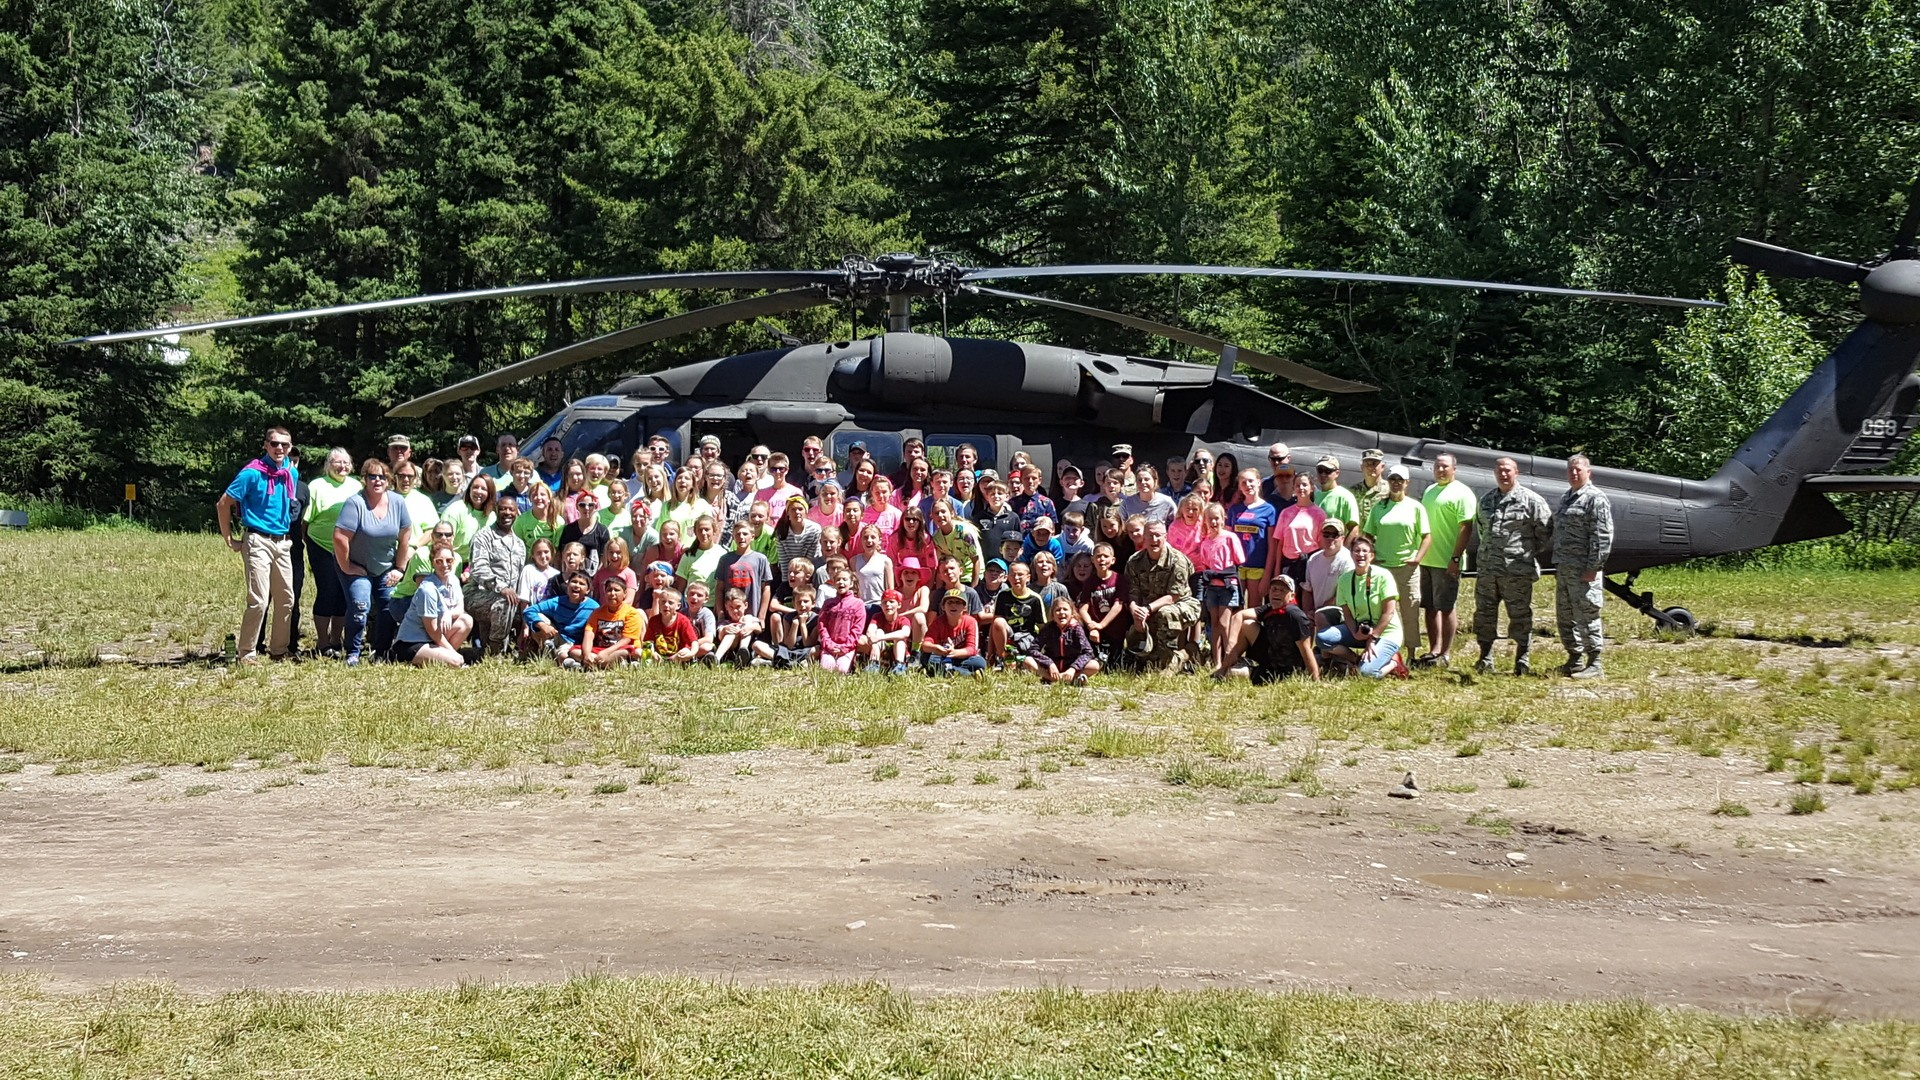 37 - 2017 Campers and Blackhawk Helicopter